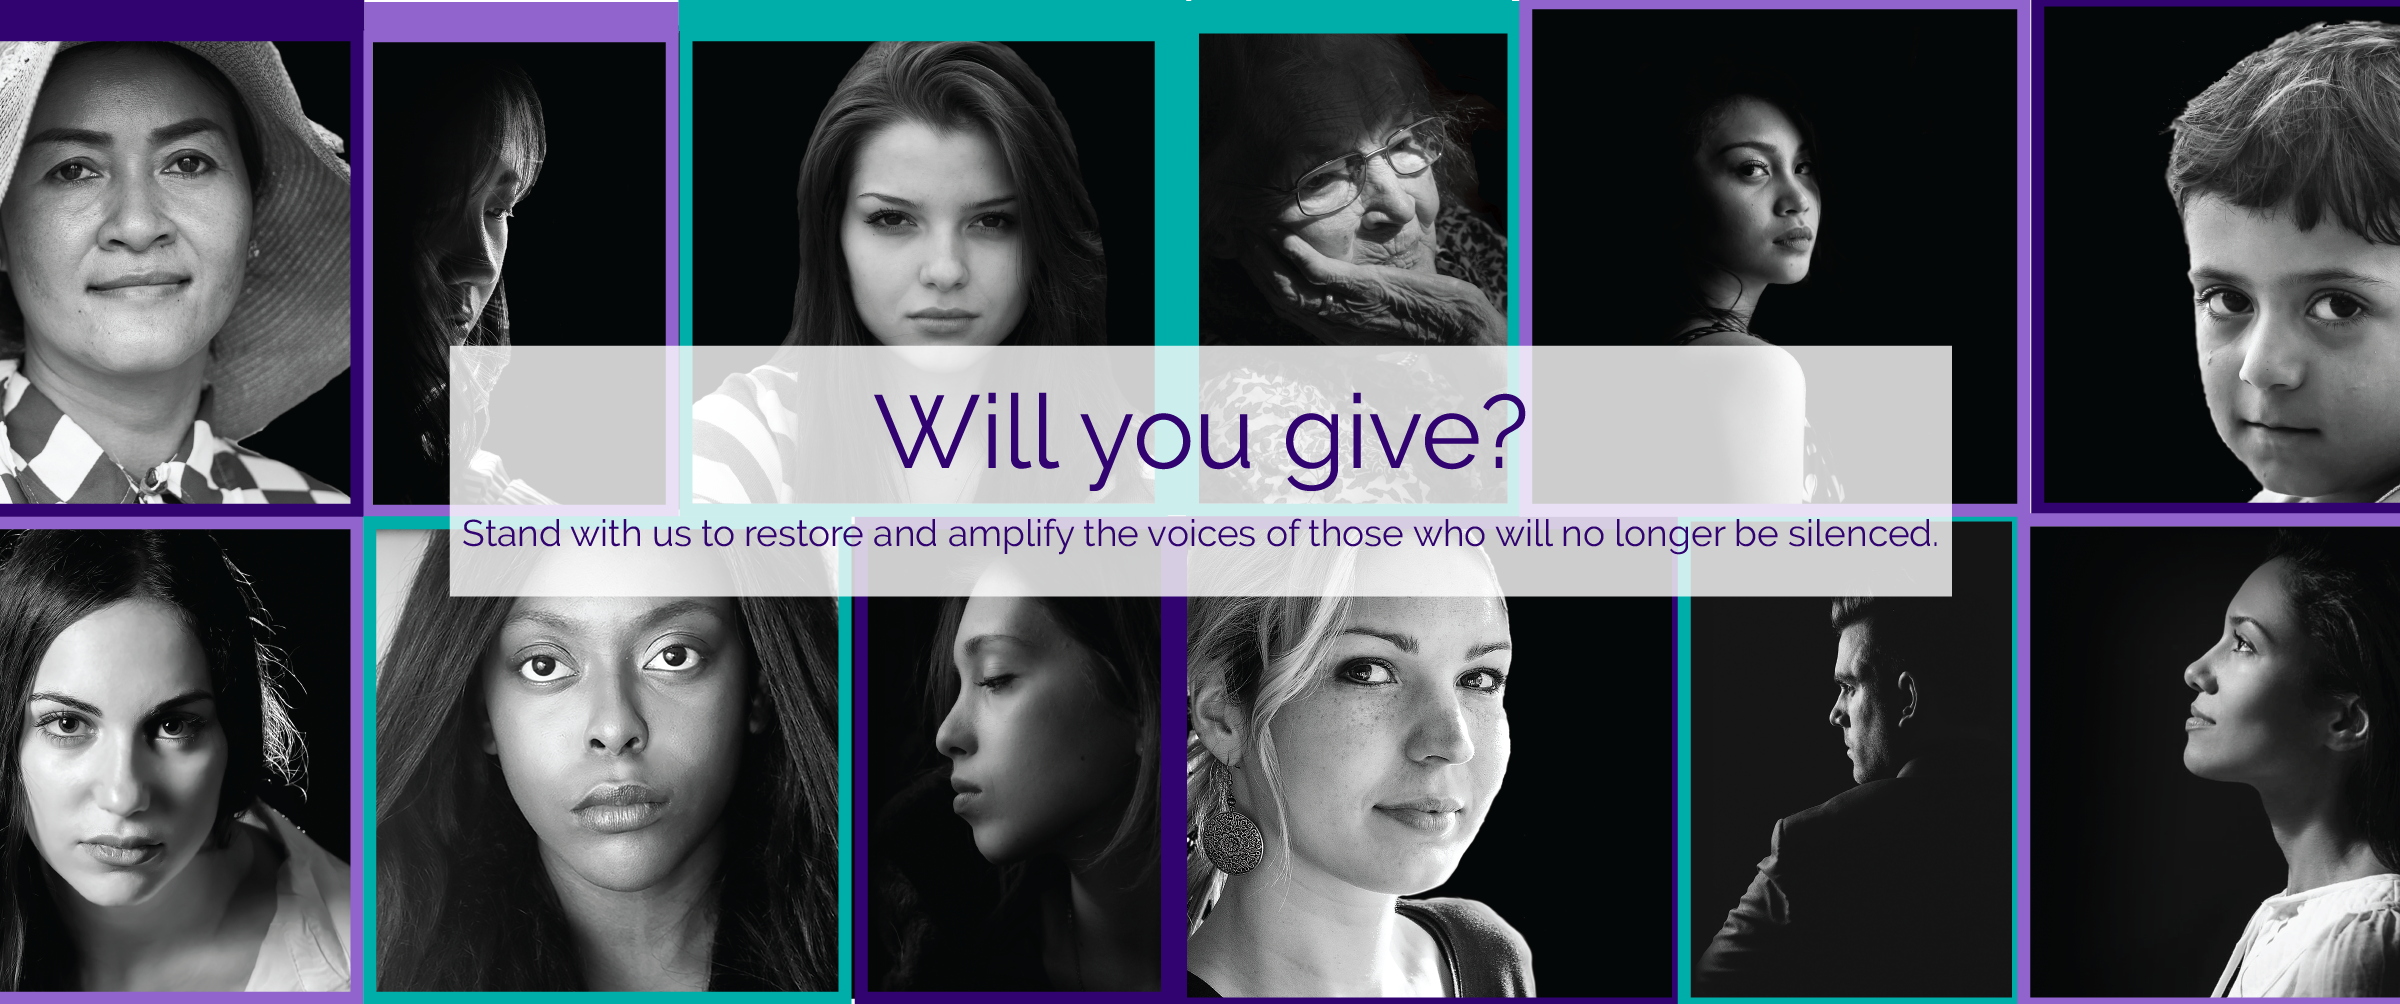 Will you give to help those experiencing abuse?